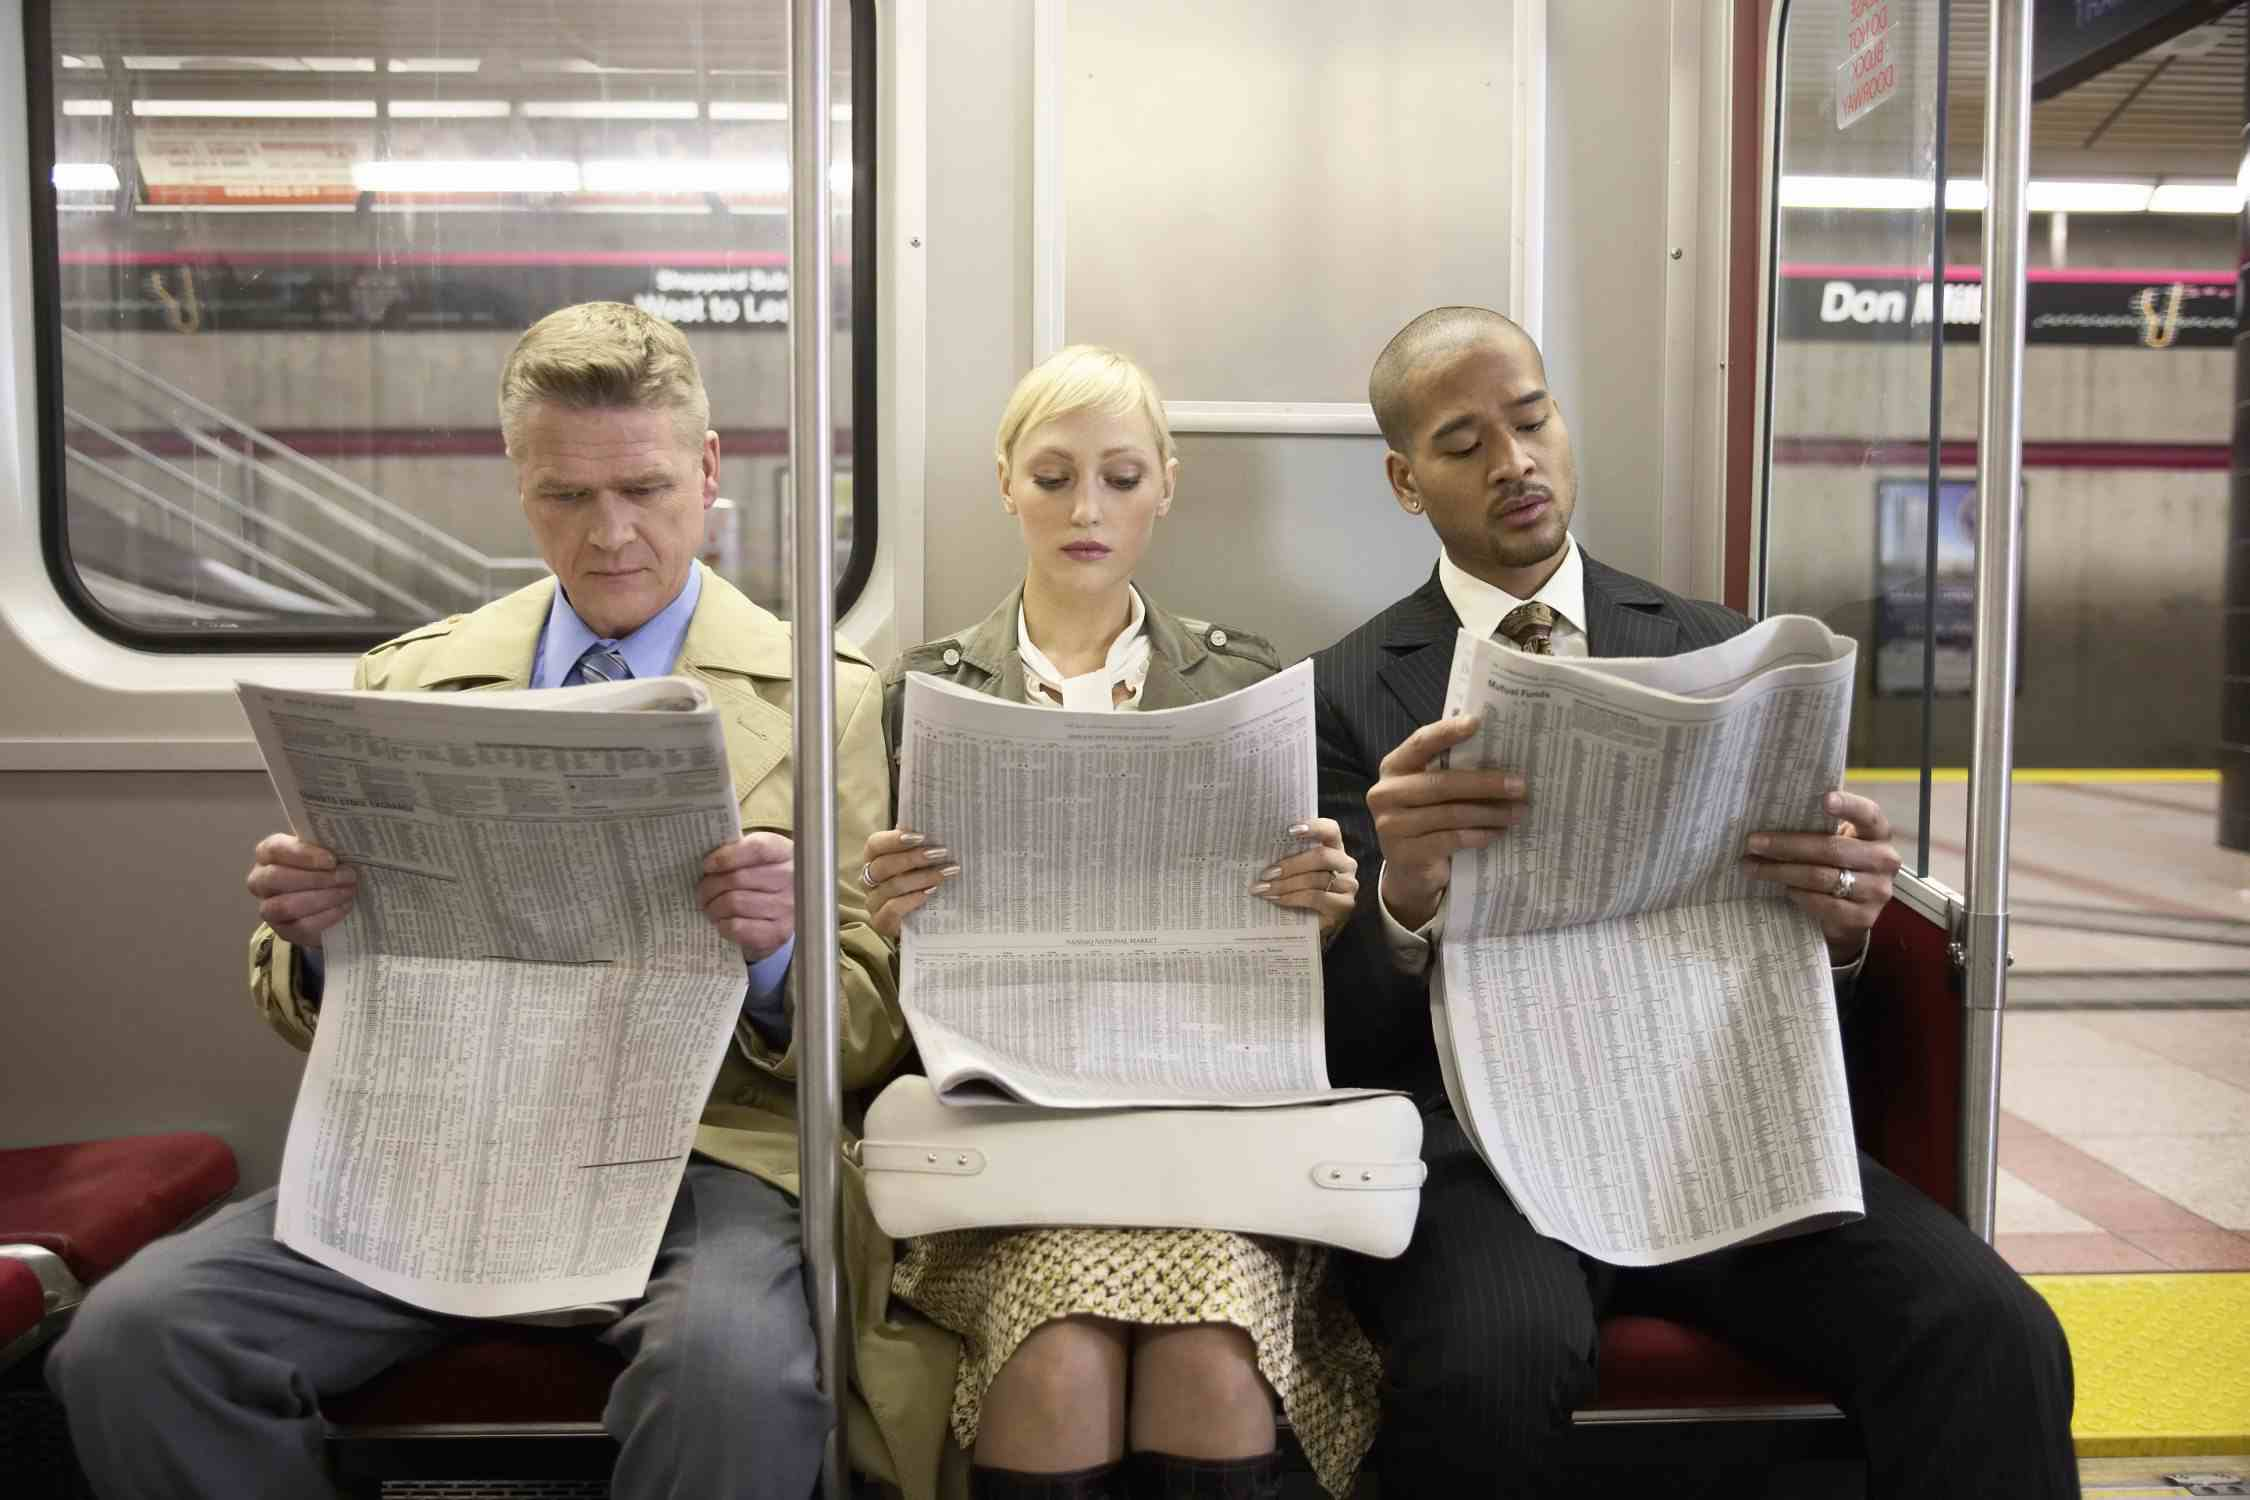 Three people reading the newspaper on a train